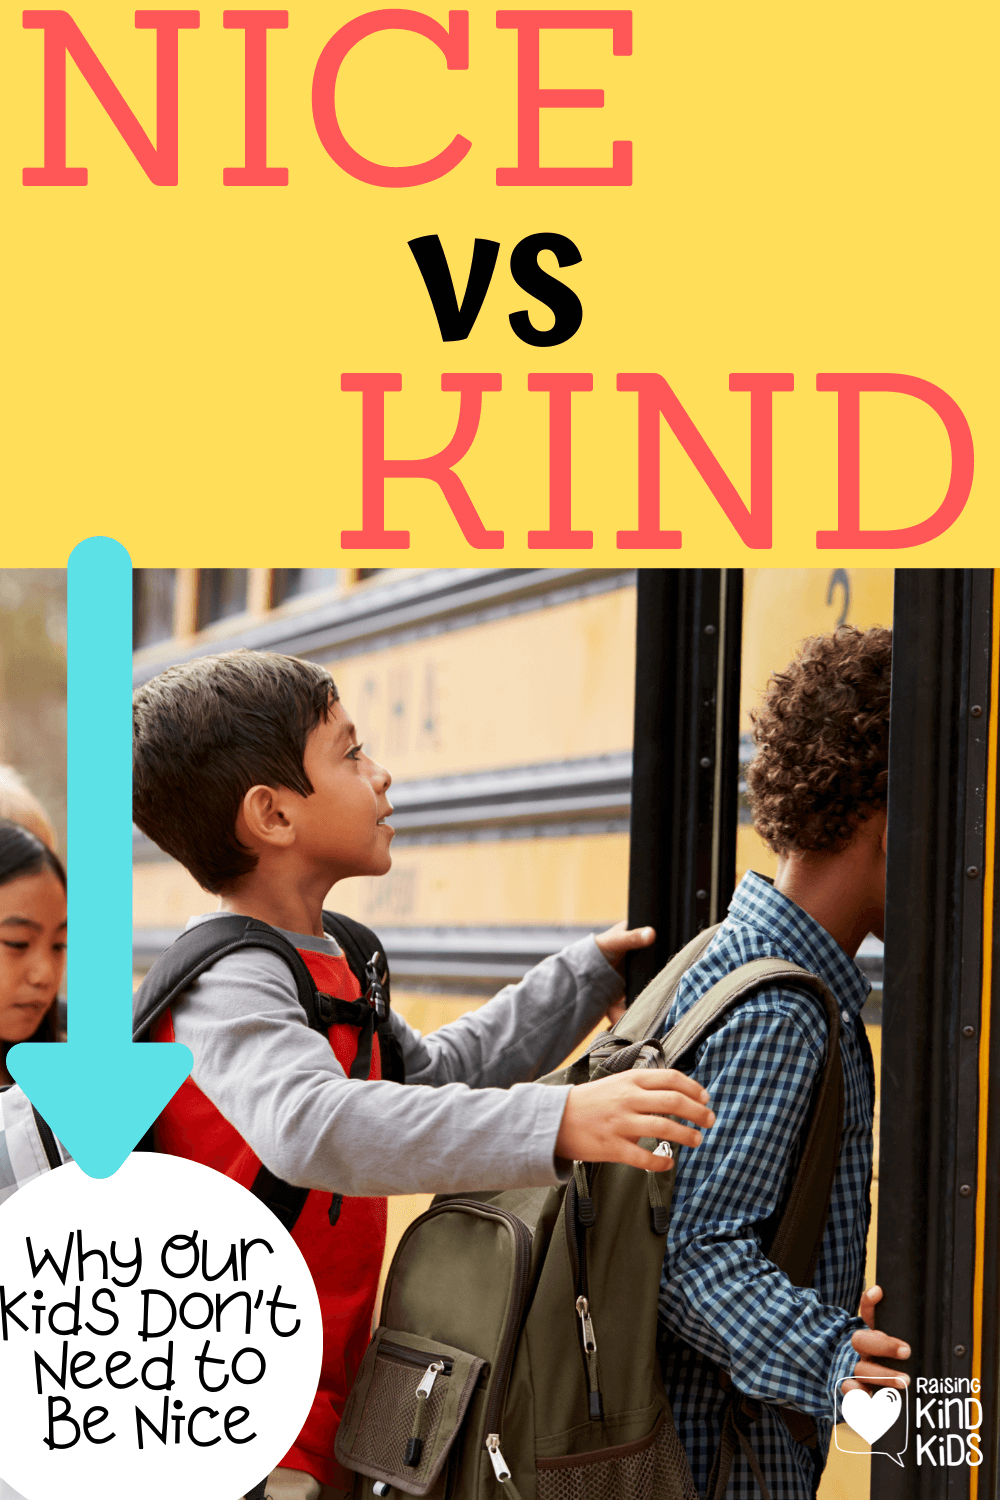 That's right. Our kids don't need to be nice. But we should be doing this instead to raise our kids to be the best version of themselves. This parenting advice will help teach your kids to be happier too! #parenting #parentingadvice #coffeeandcarpool #positiveparenting #raisingkindkids #kindness #nicekids #nice